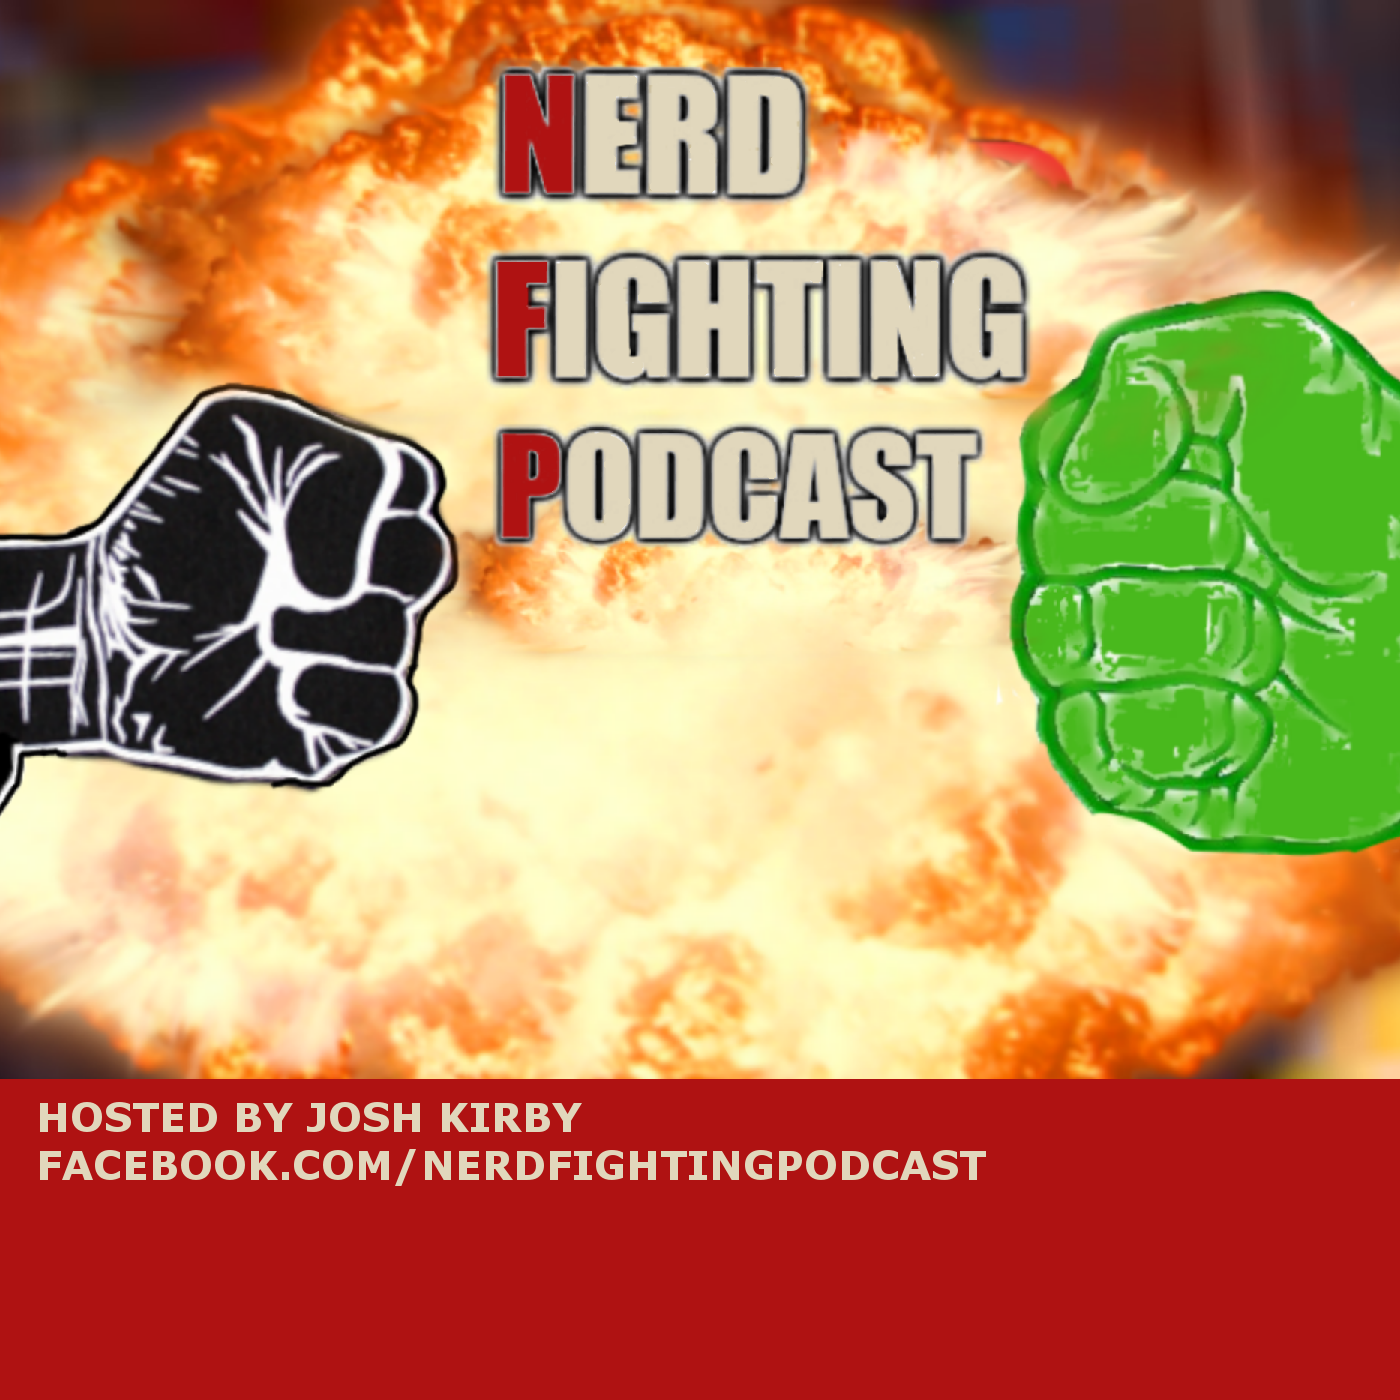 NFP: Nerdfighting Podcast